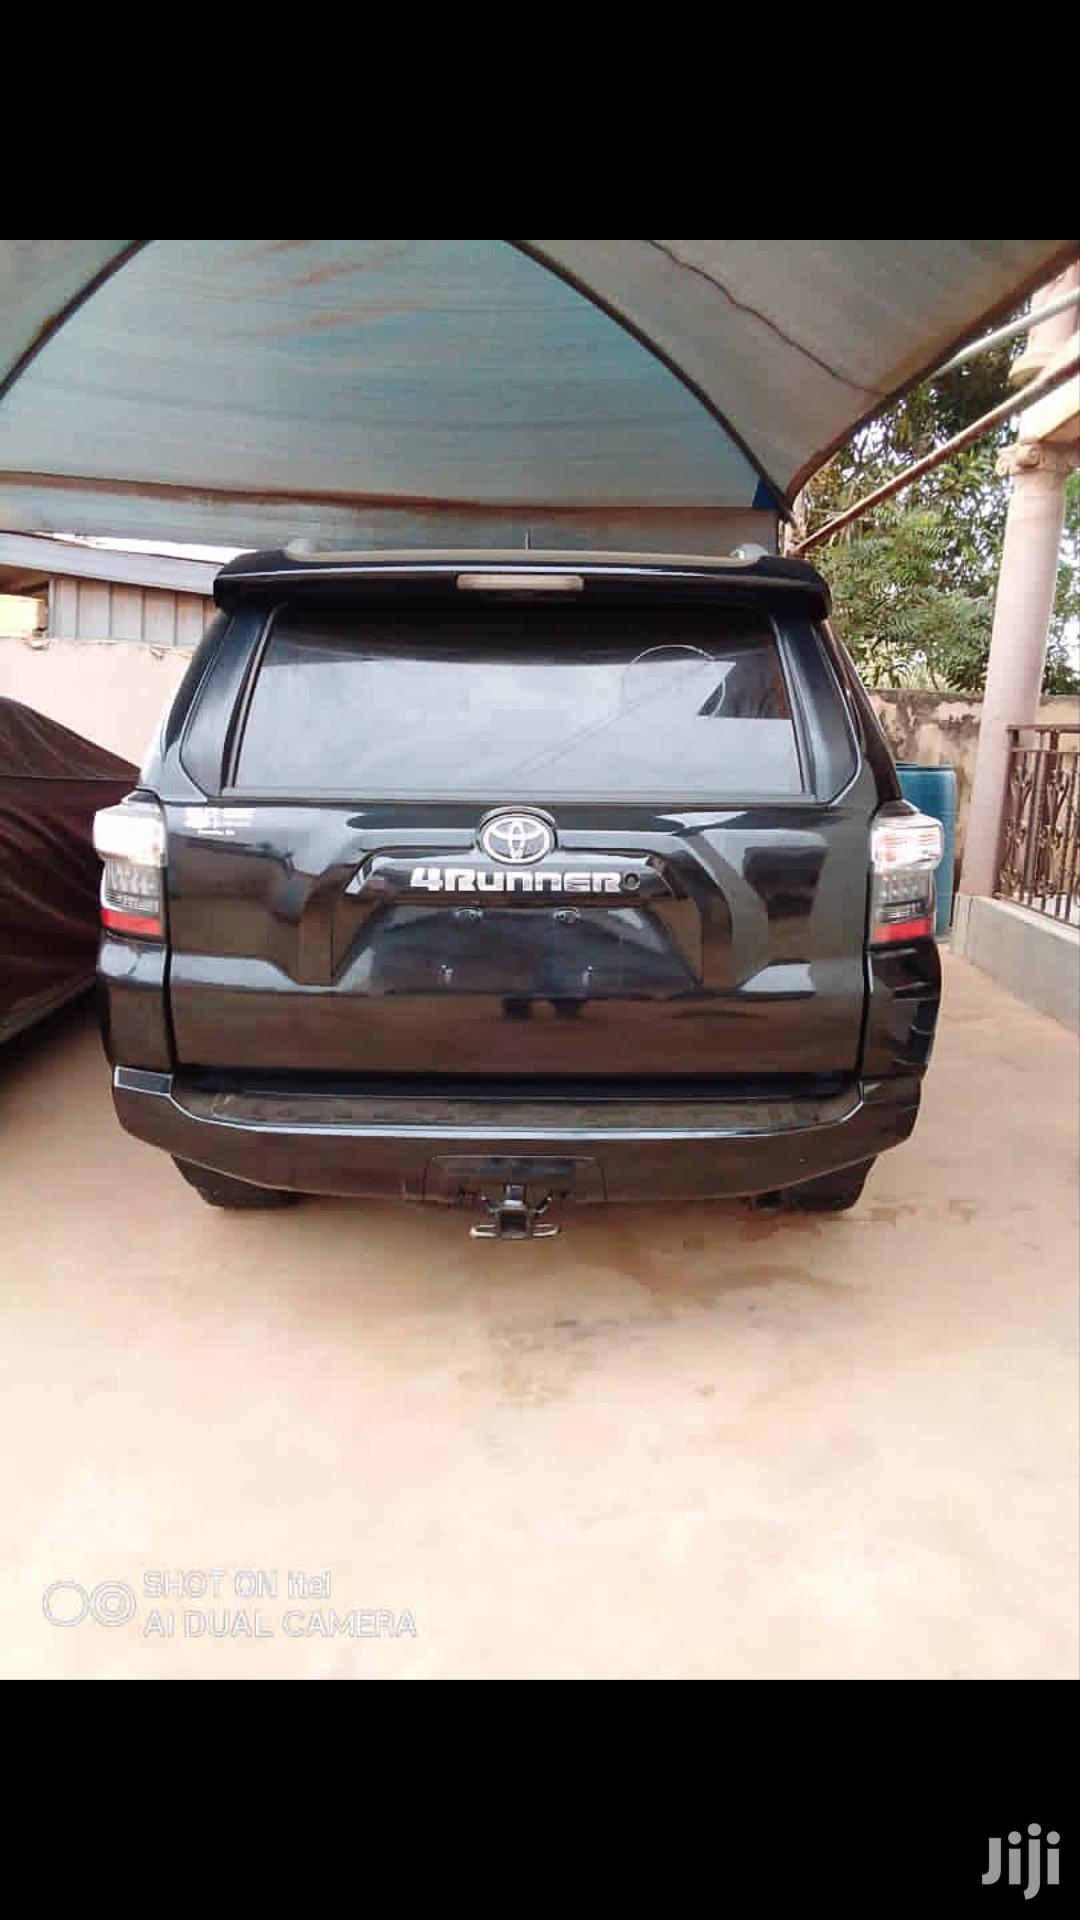 Toyota 4-Runner 2016 Black | Cars for sale in Accra Metropolitan, Greater Accra, Ghana